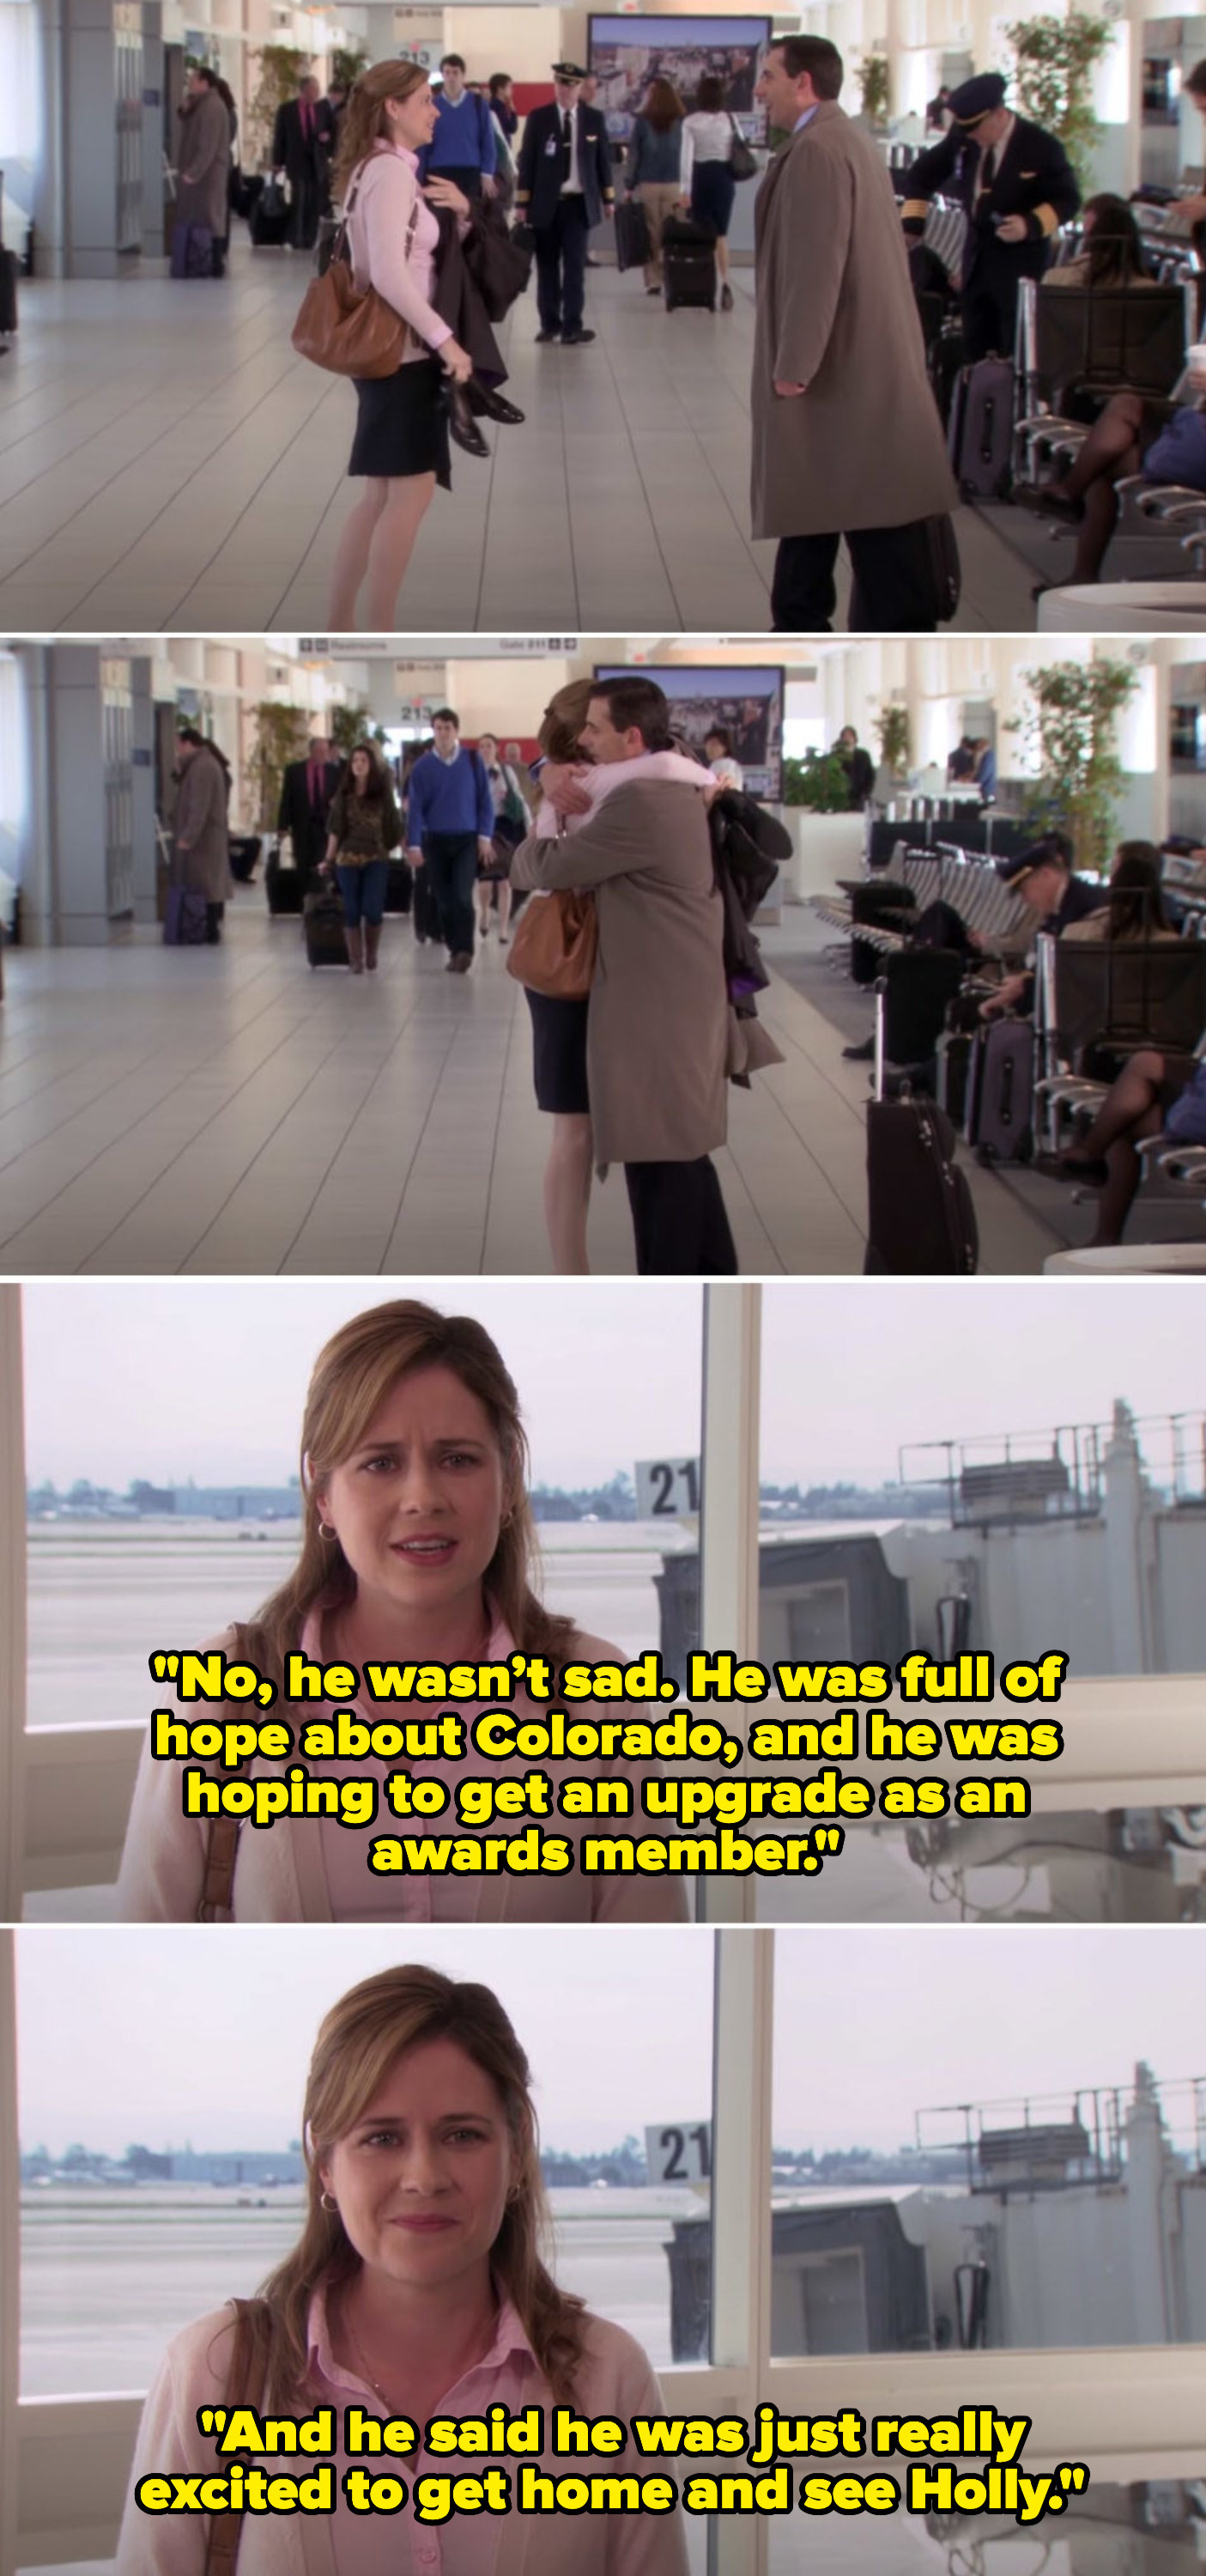 """After hugging Michael goodbye, Pam by herself in another scene says, """"No, he wasn't sad; he was full of hope about Colorado, and he was hoping to get an upgrade as an awards member; and he said he was just really excited to get home and see Holly"""""""